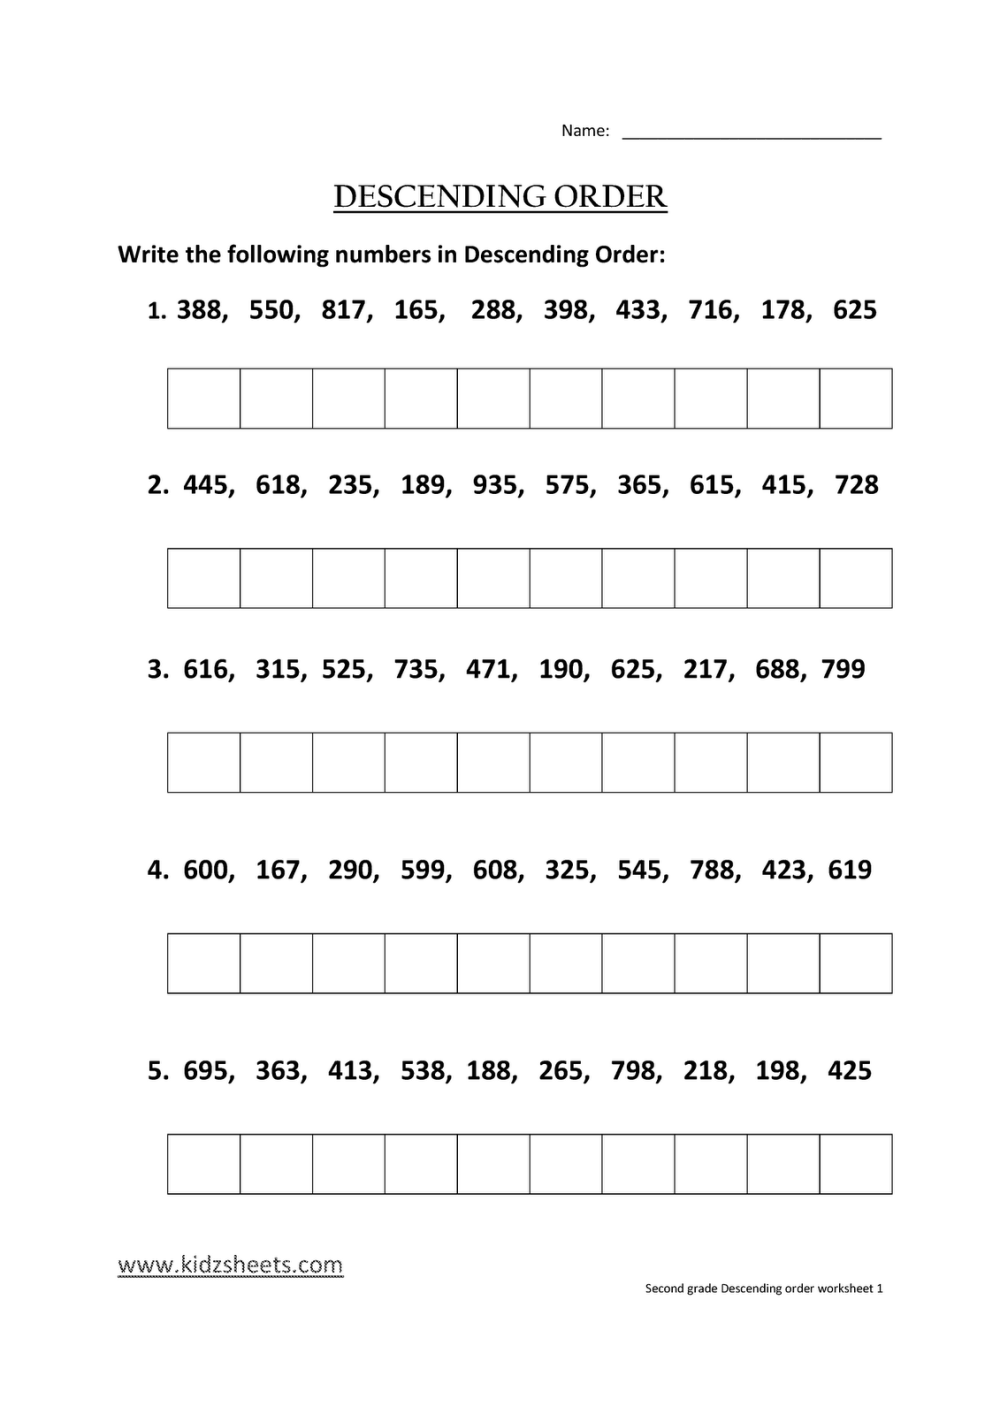 medium resolution of Ascending And Descending Notes Worksheet   Printable Worksheets and  Activities for Teachers